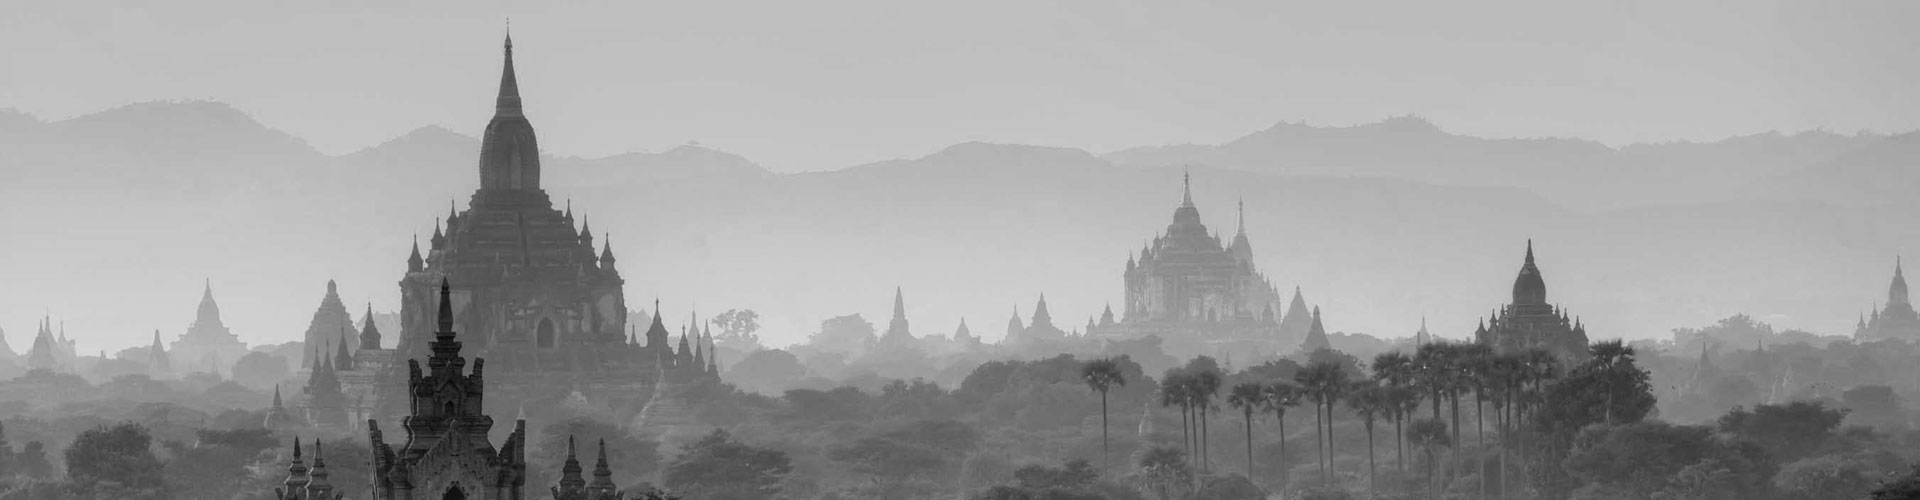 Myanmar (Burma) Travel Advice